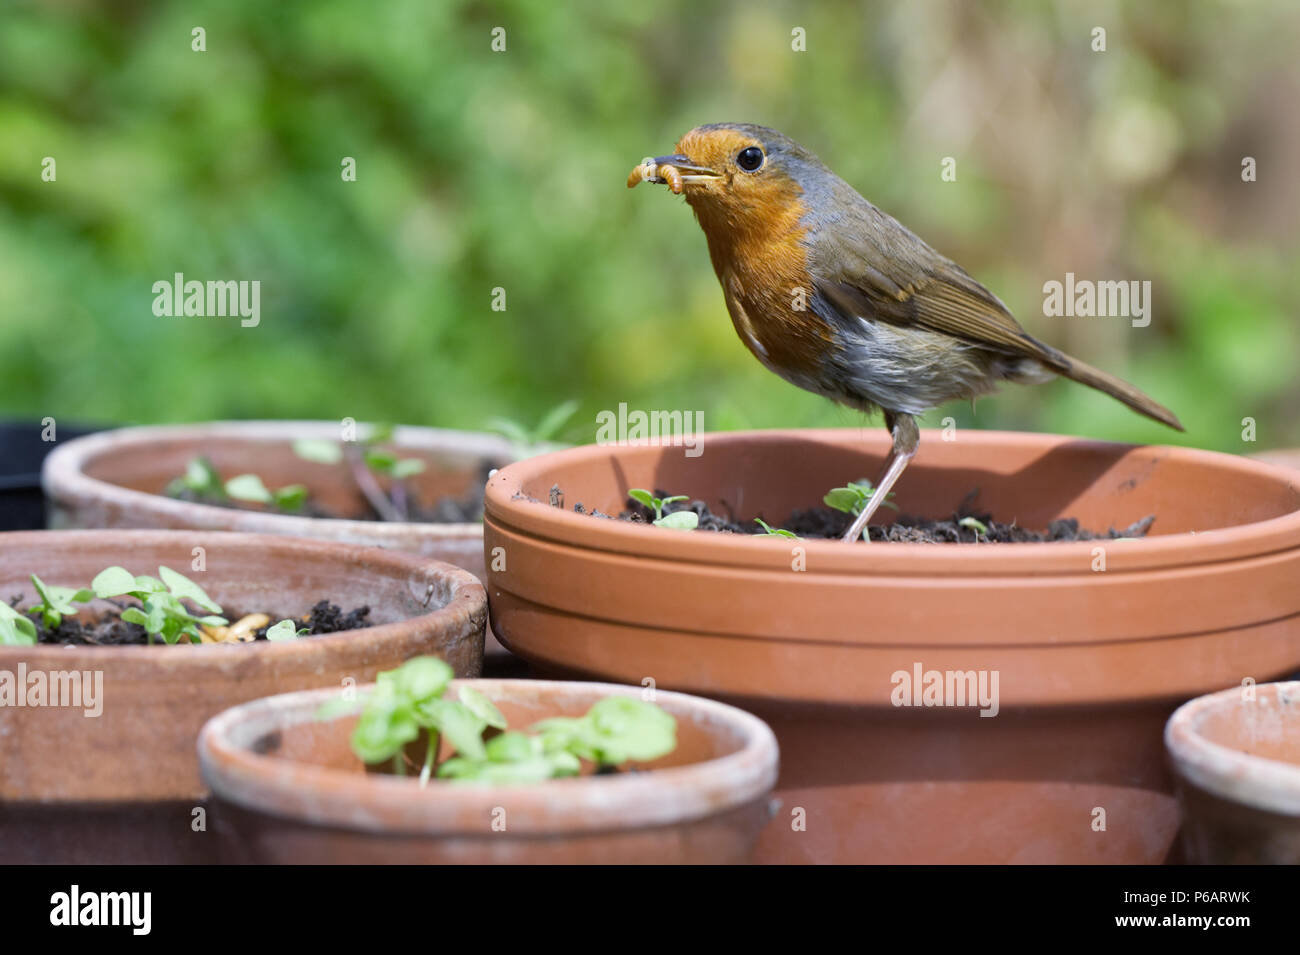 Erithacus rubecula. Robin feeding on mealworms in an English garden. - Stock Image